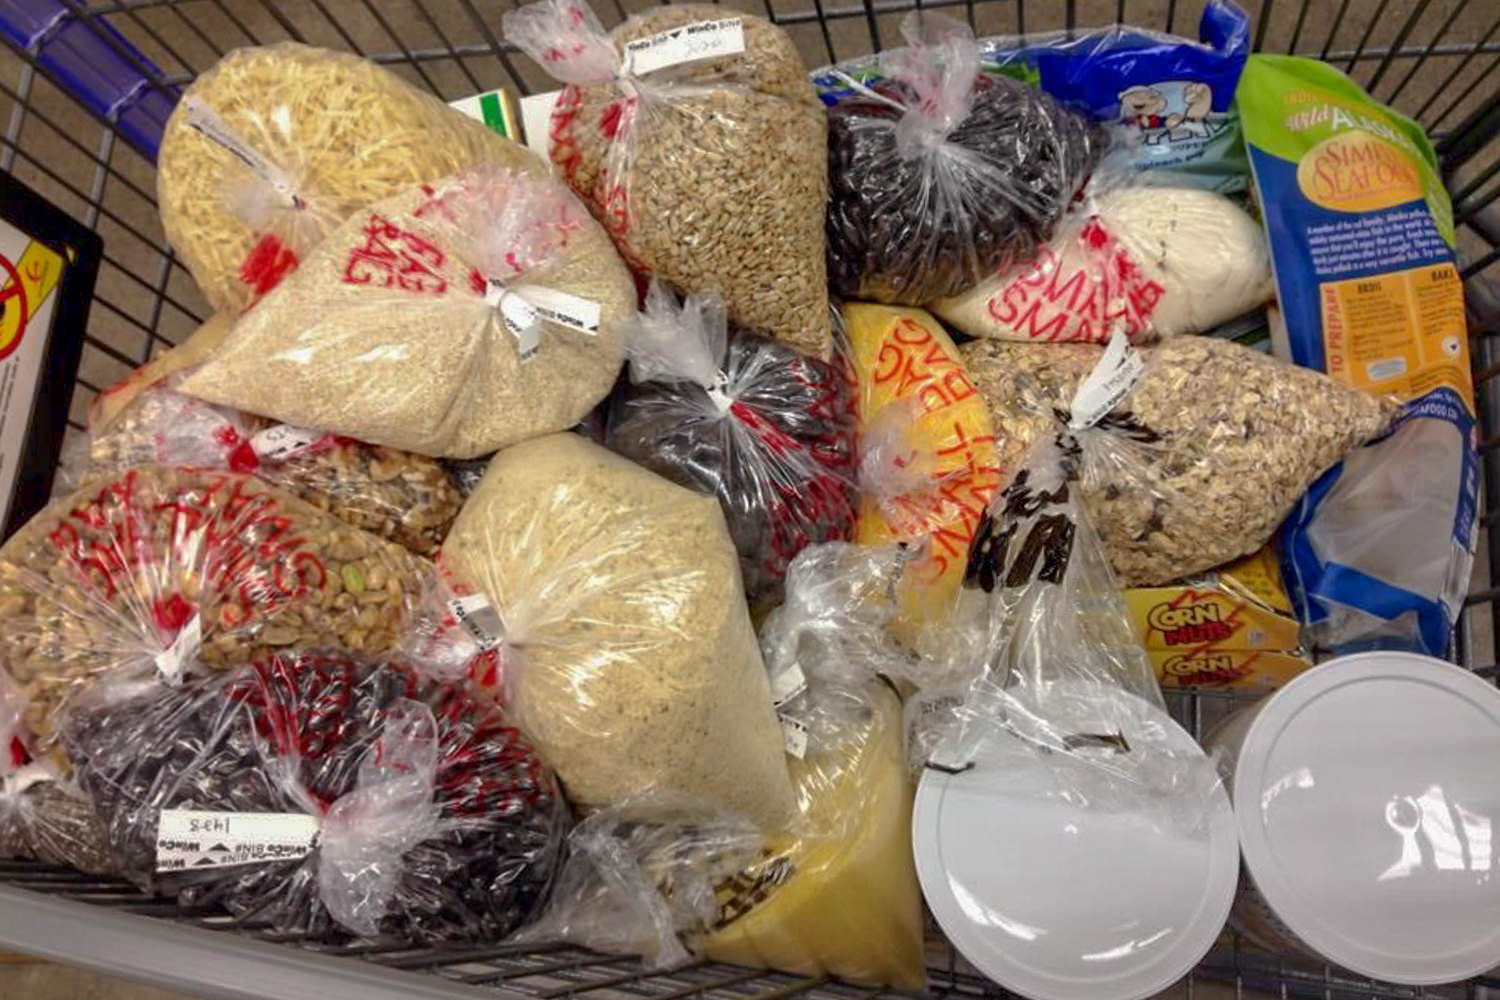 buying dried goods in bulk can save money.